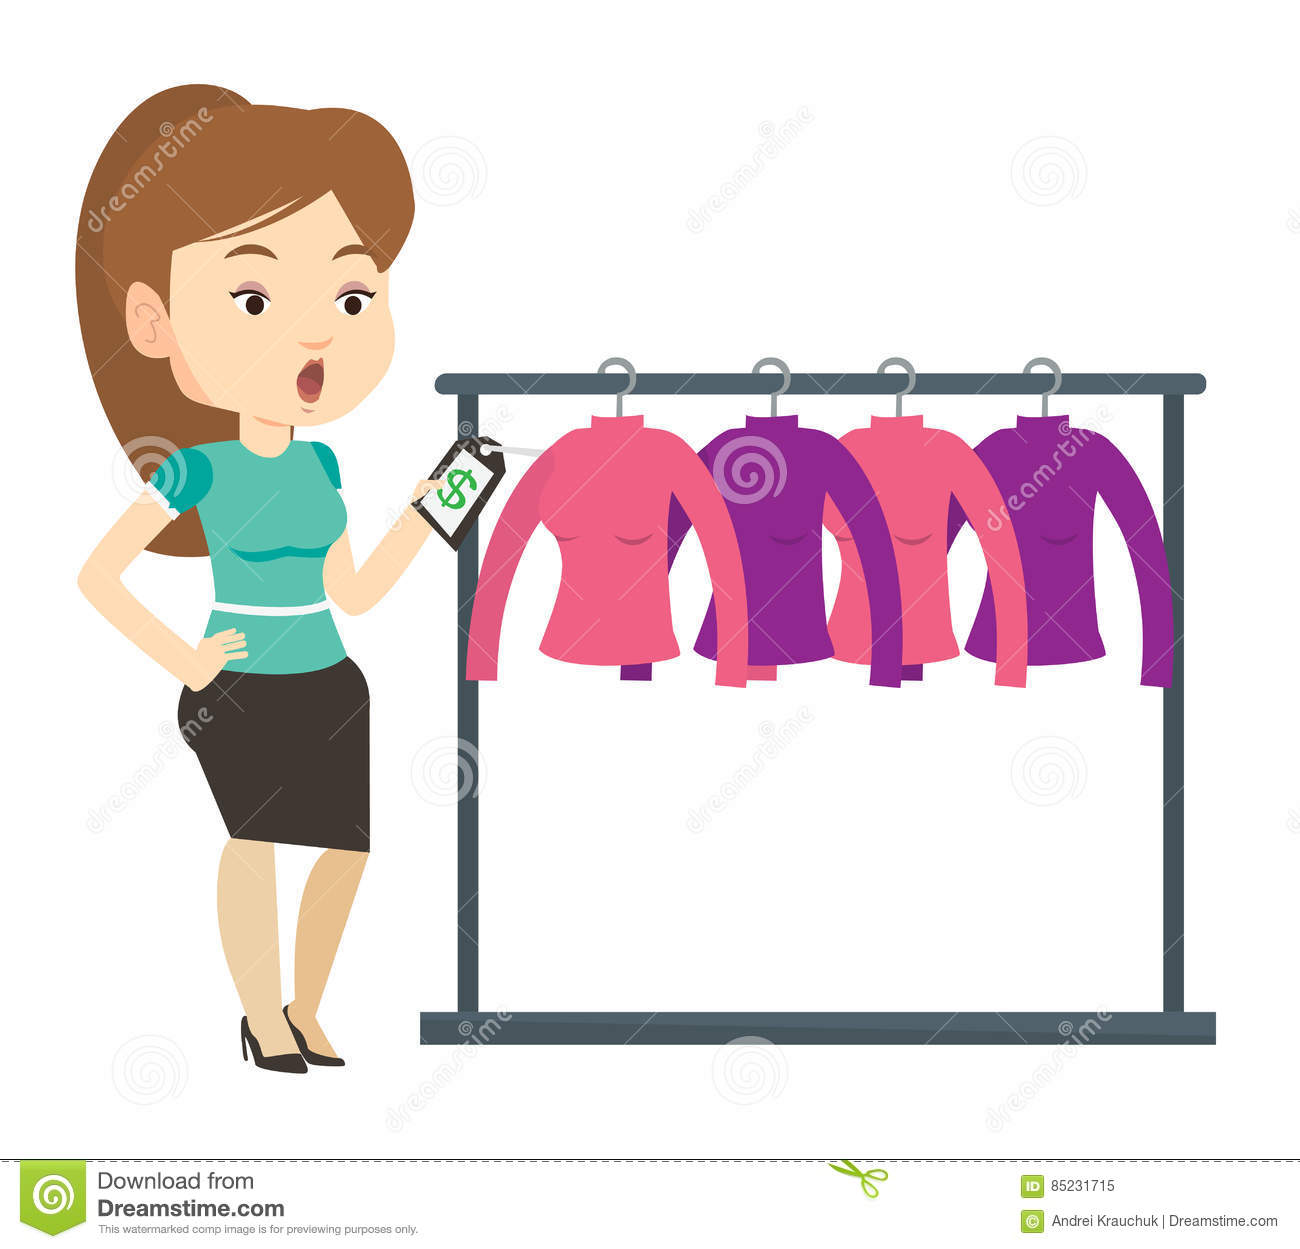 Tag clothing store